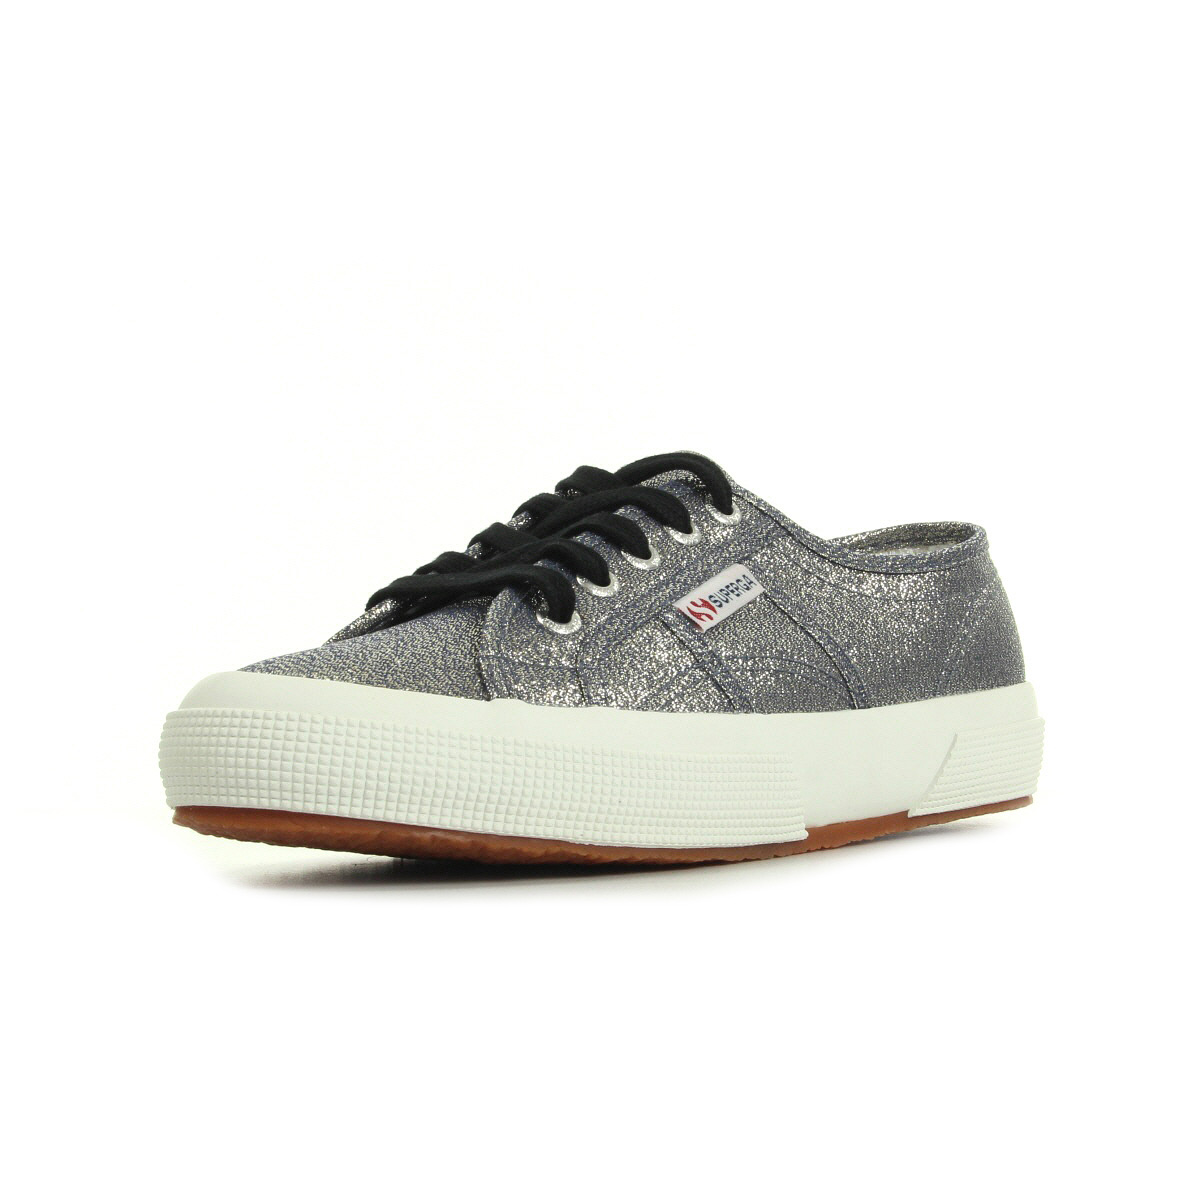 Marques Chaussure femme Superga femme 2750 Lame W Grey